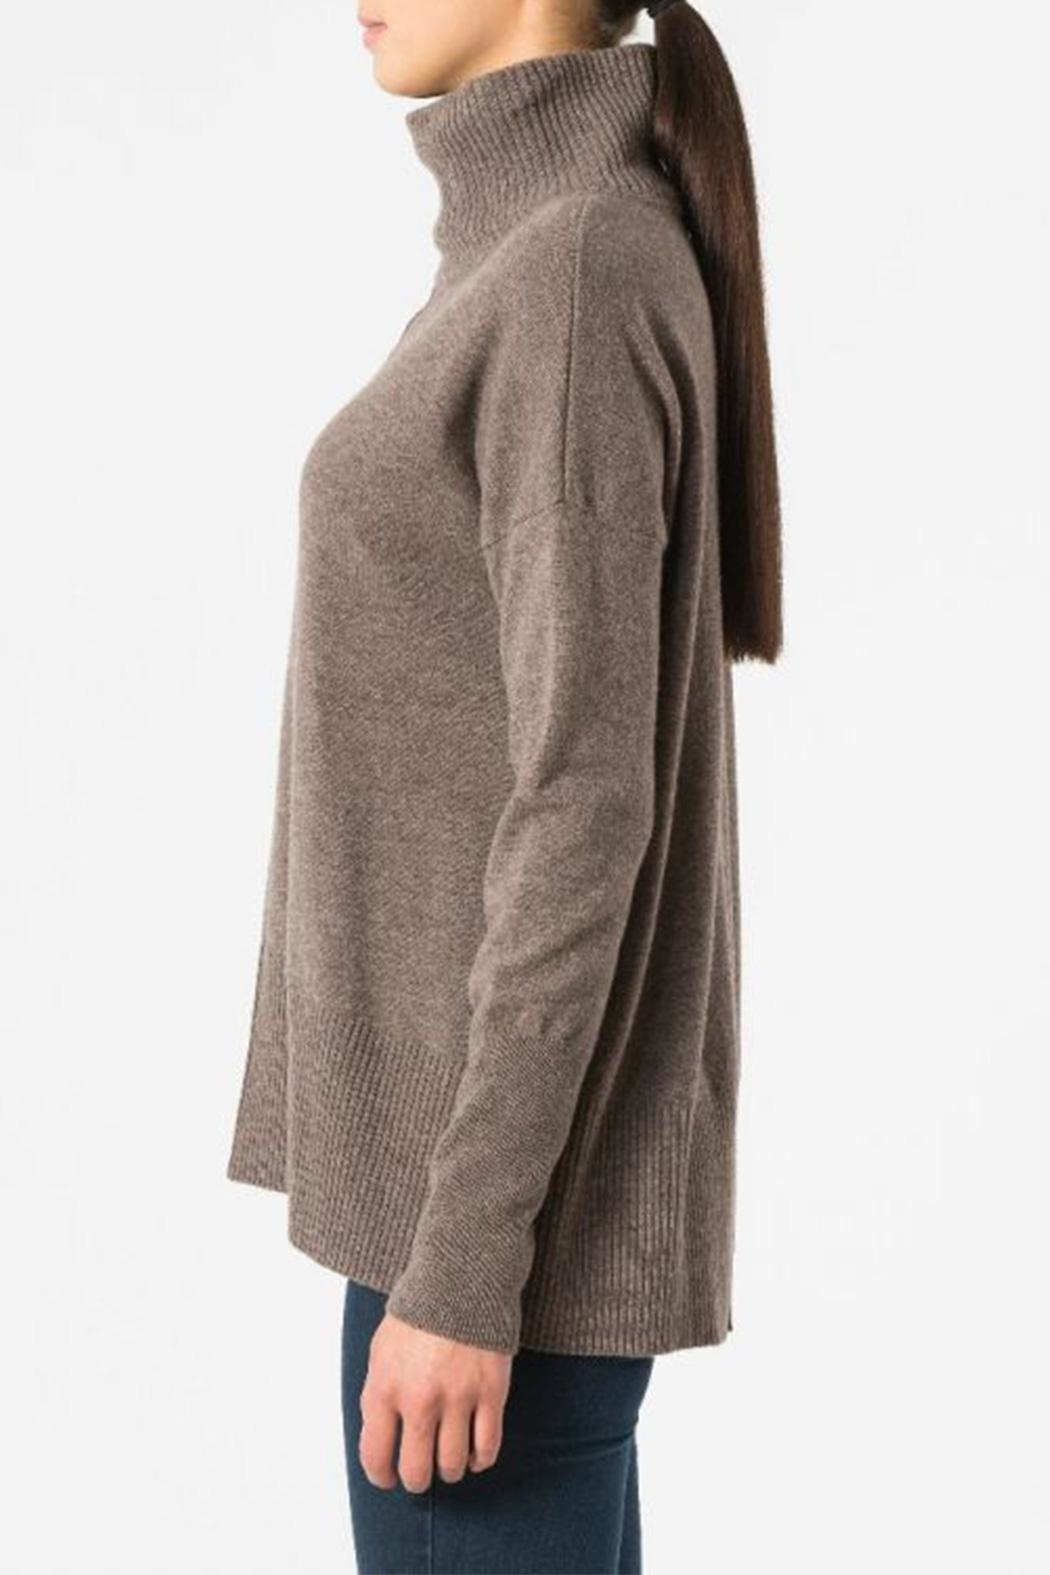 Autumn Cashmere Relaxed Mock Sweater - Front Full Image